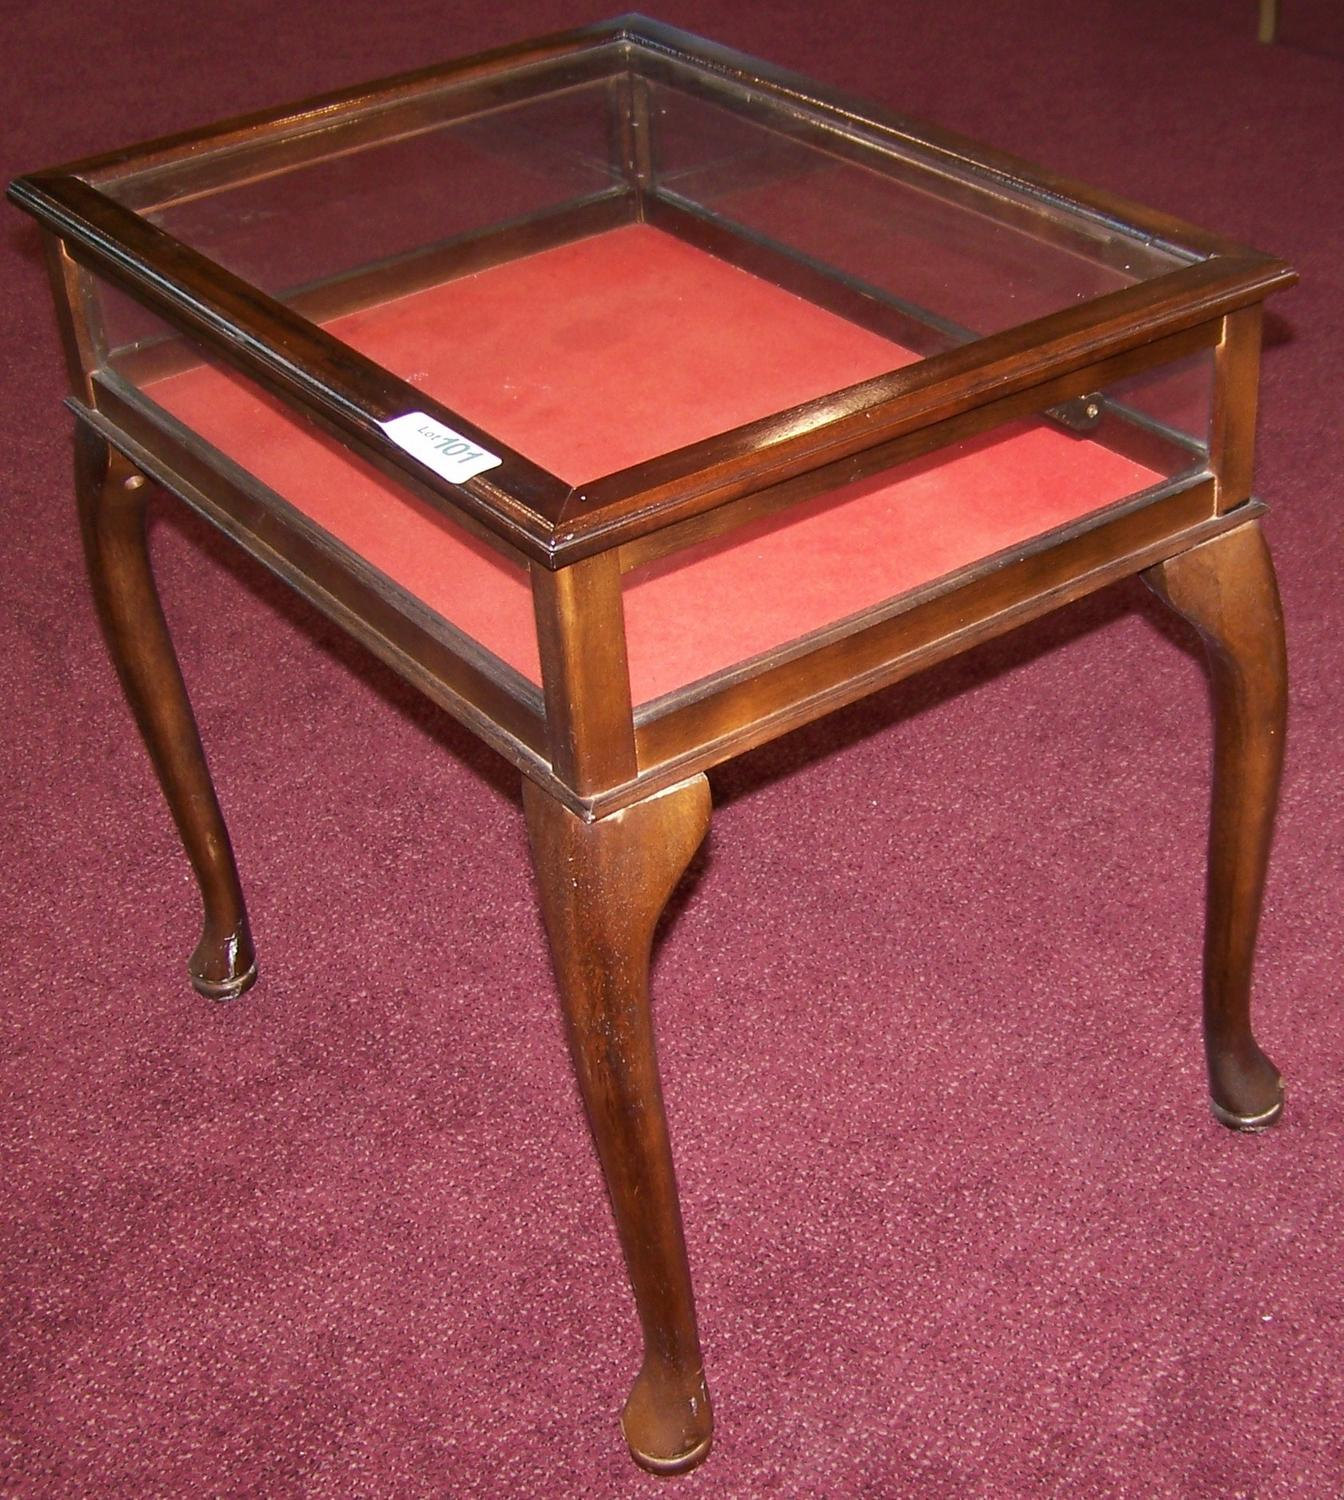 Handsome small glass wood display table